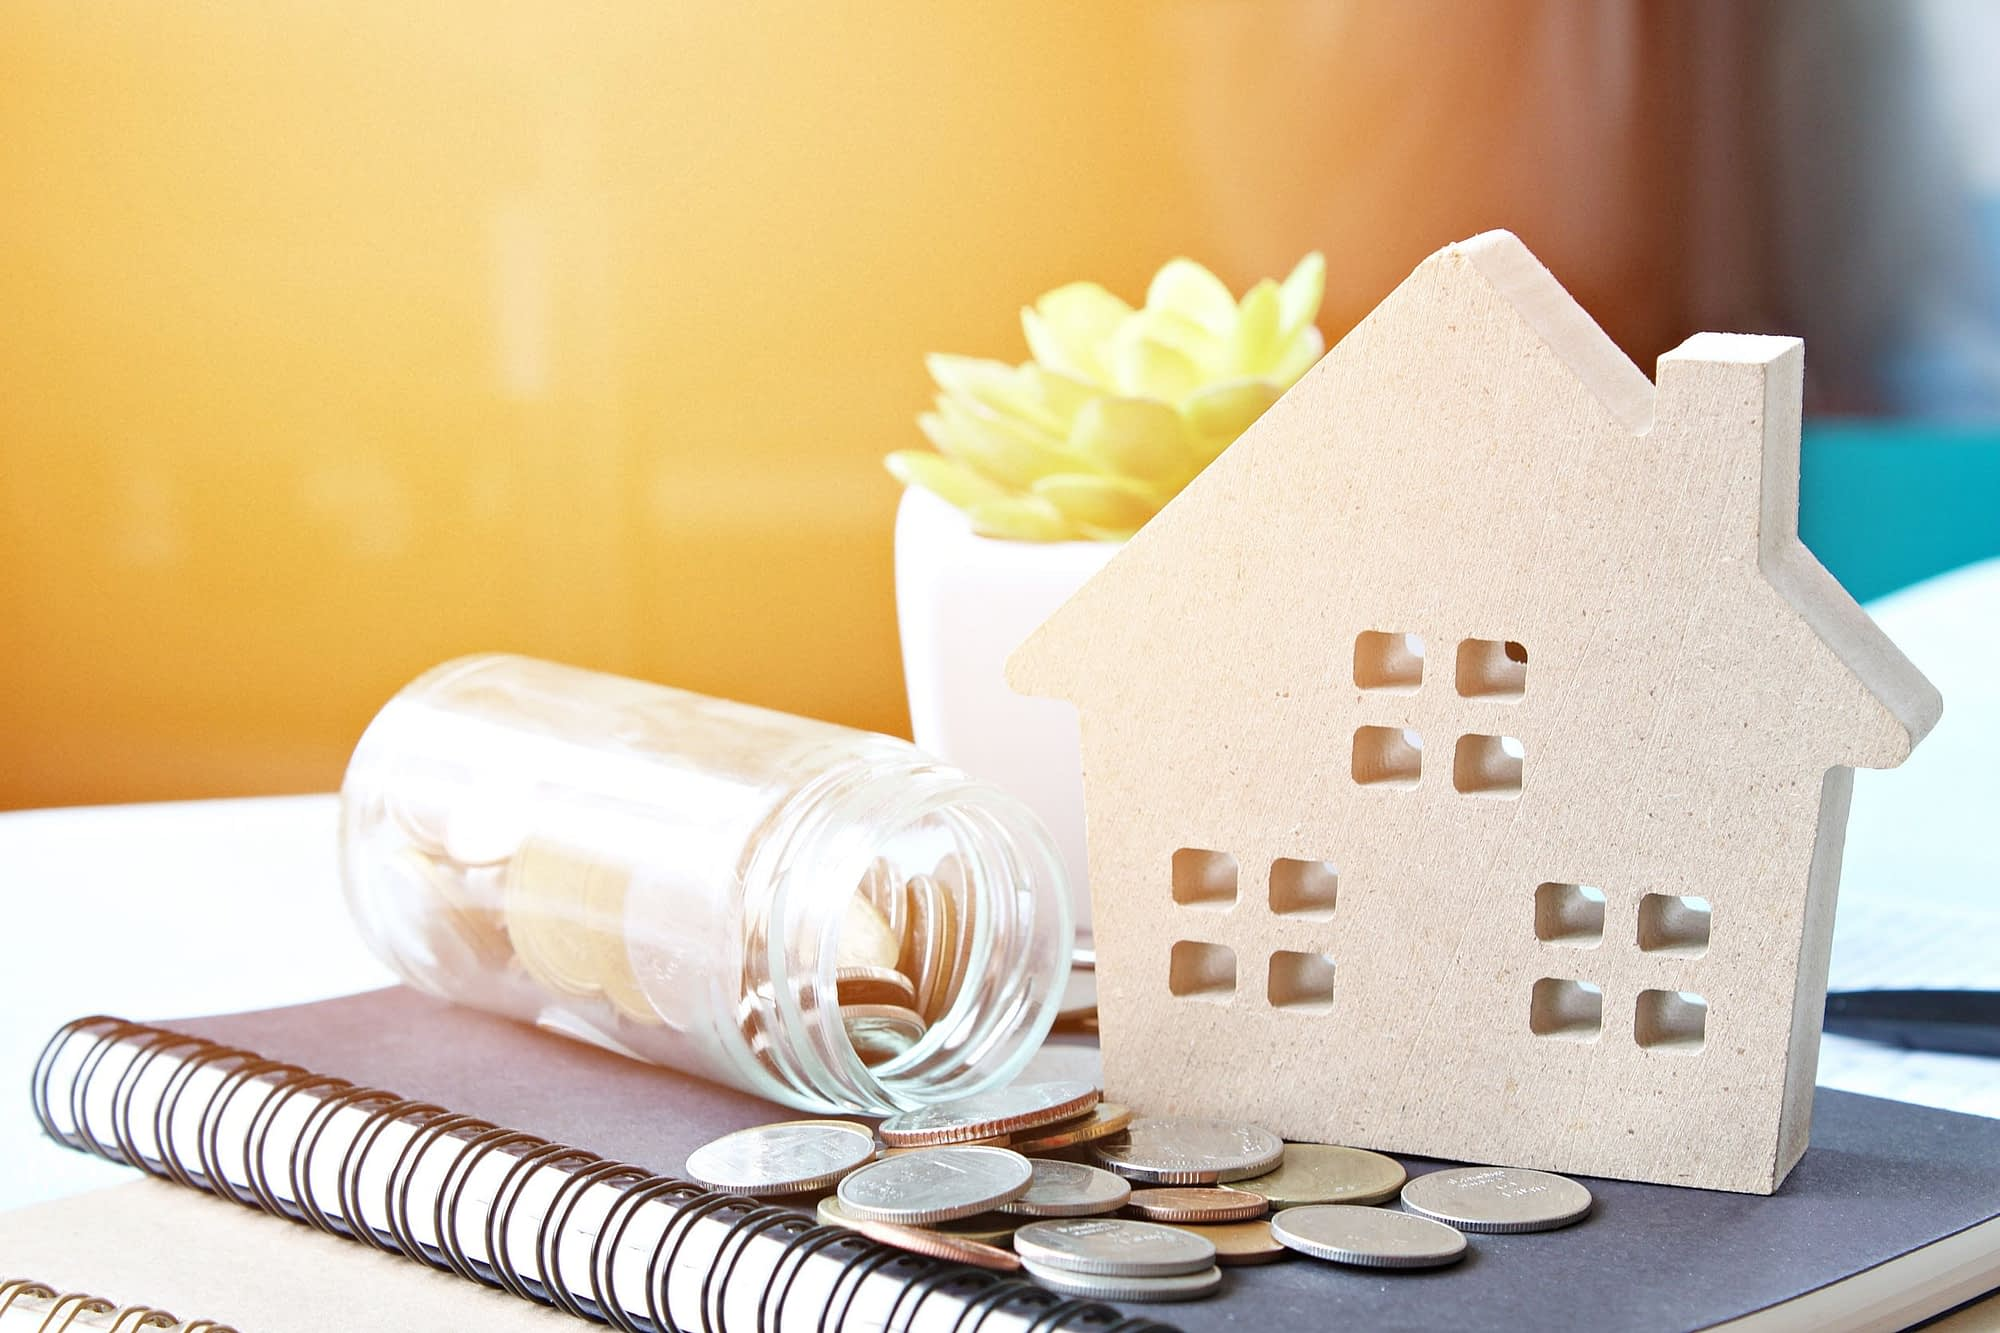 Toy house over coins and financial documents